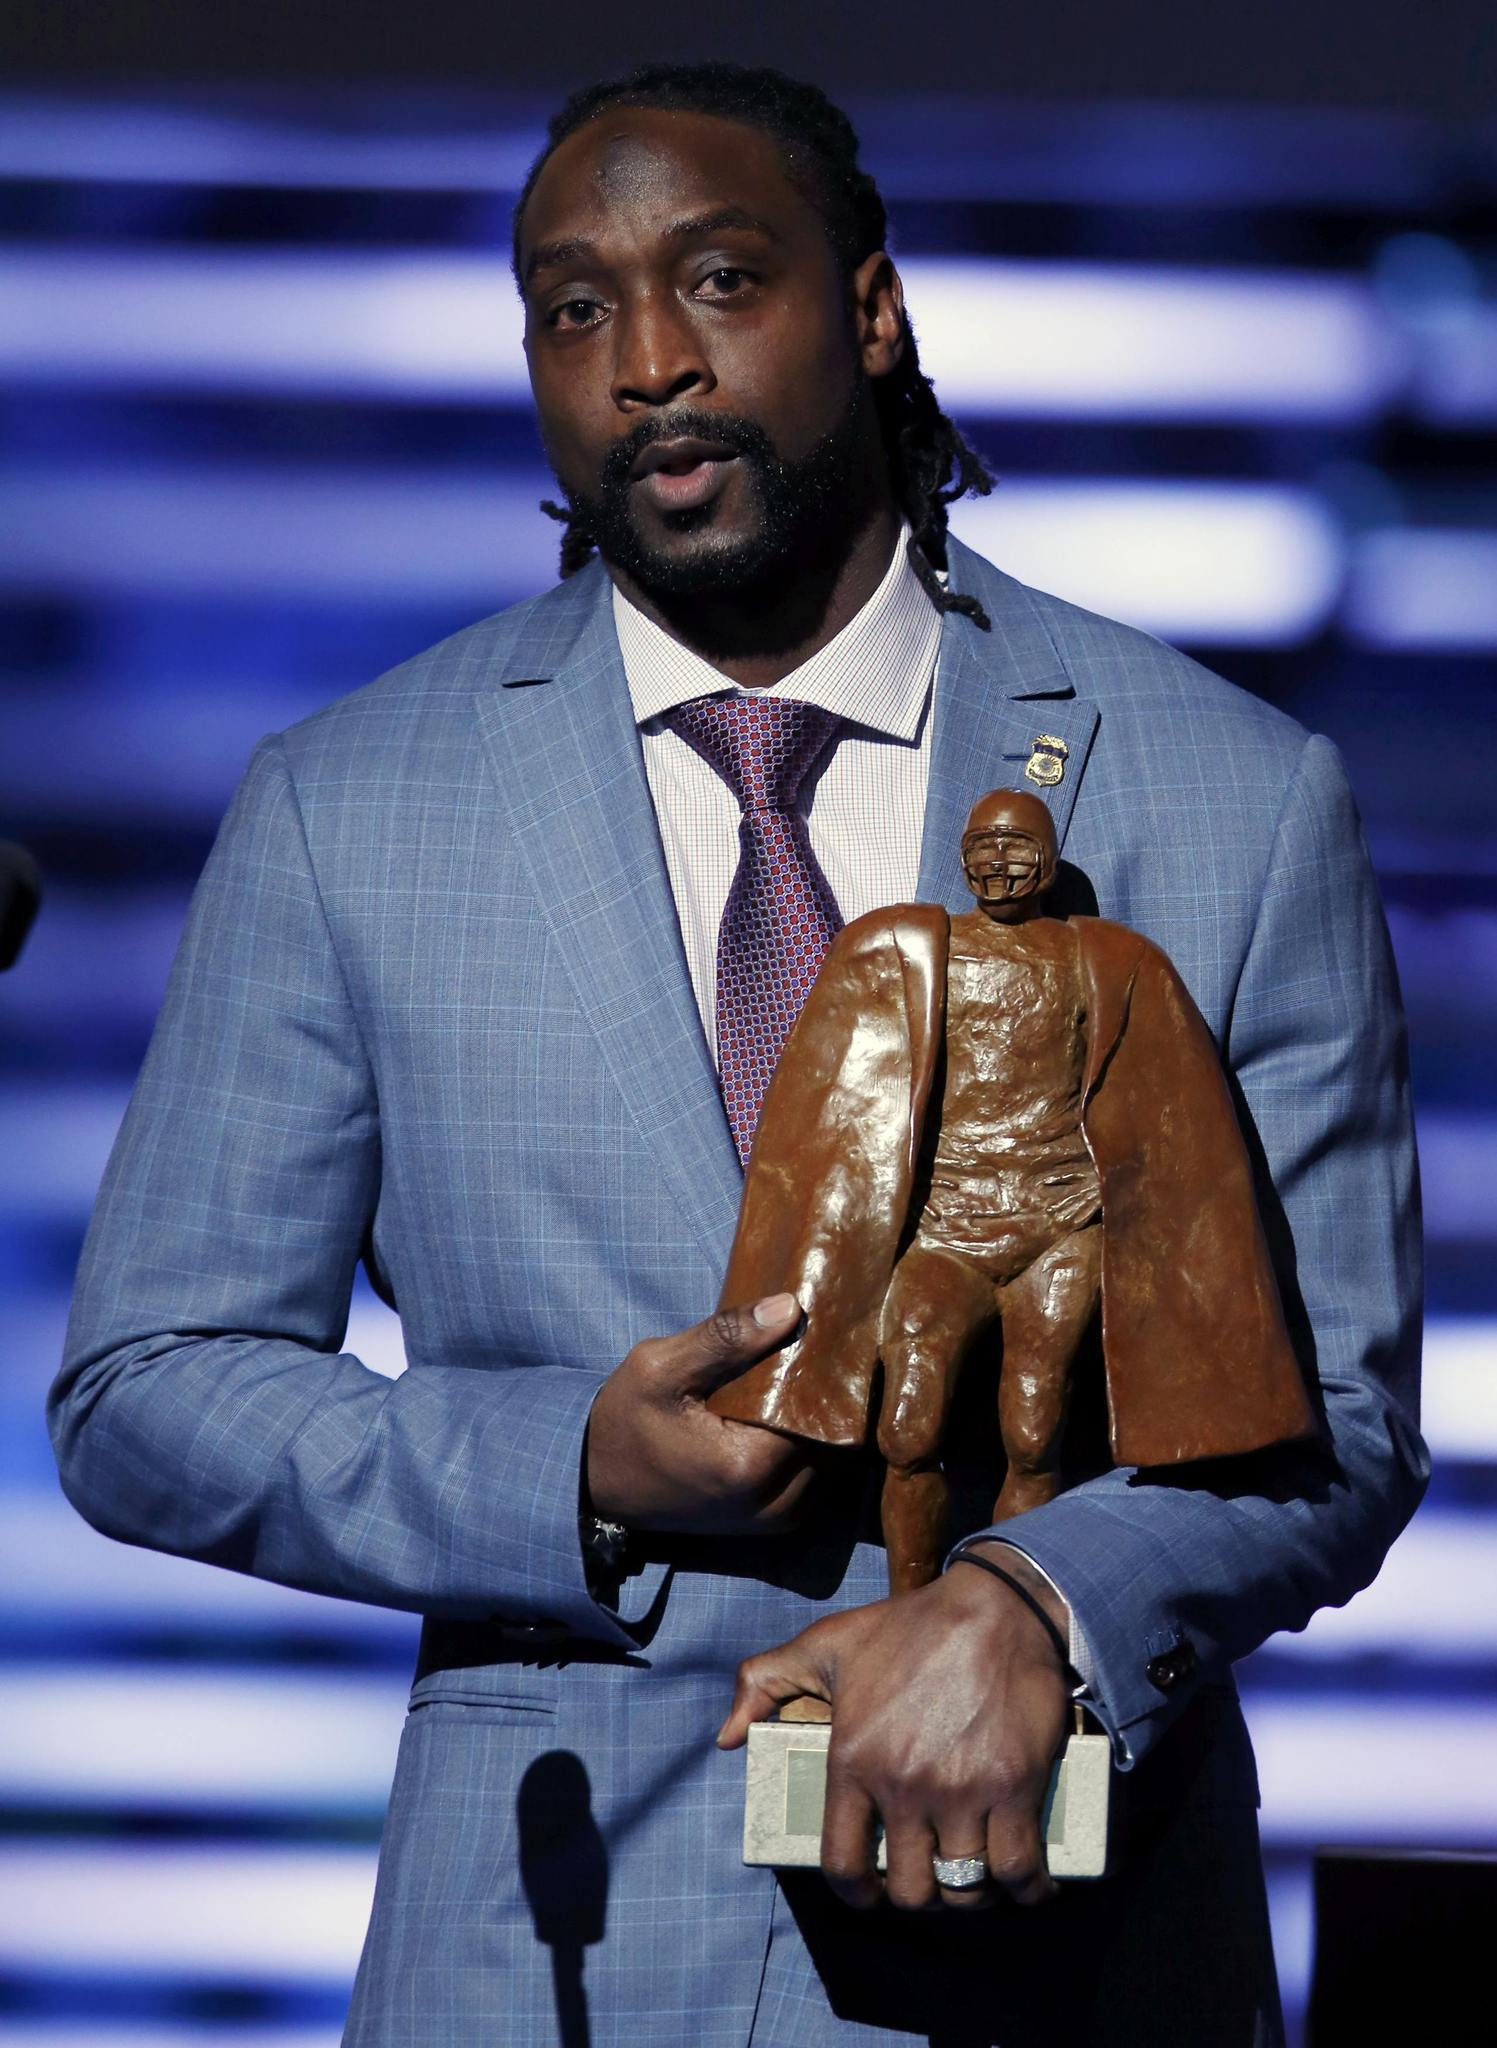 Chicago Bears Charles Tillman speaks after accepting the Walter Payton NFL Man of the Year award during the NFL Honors award show in New York February 1, 2014.